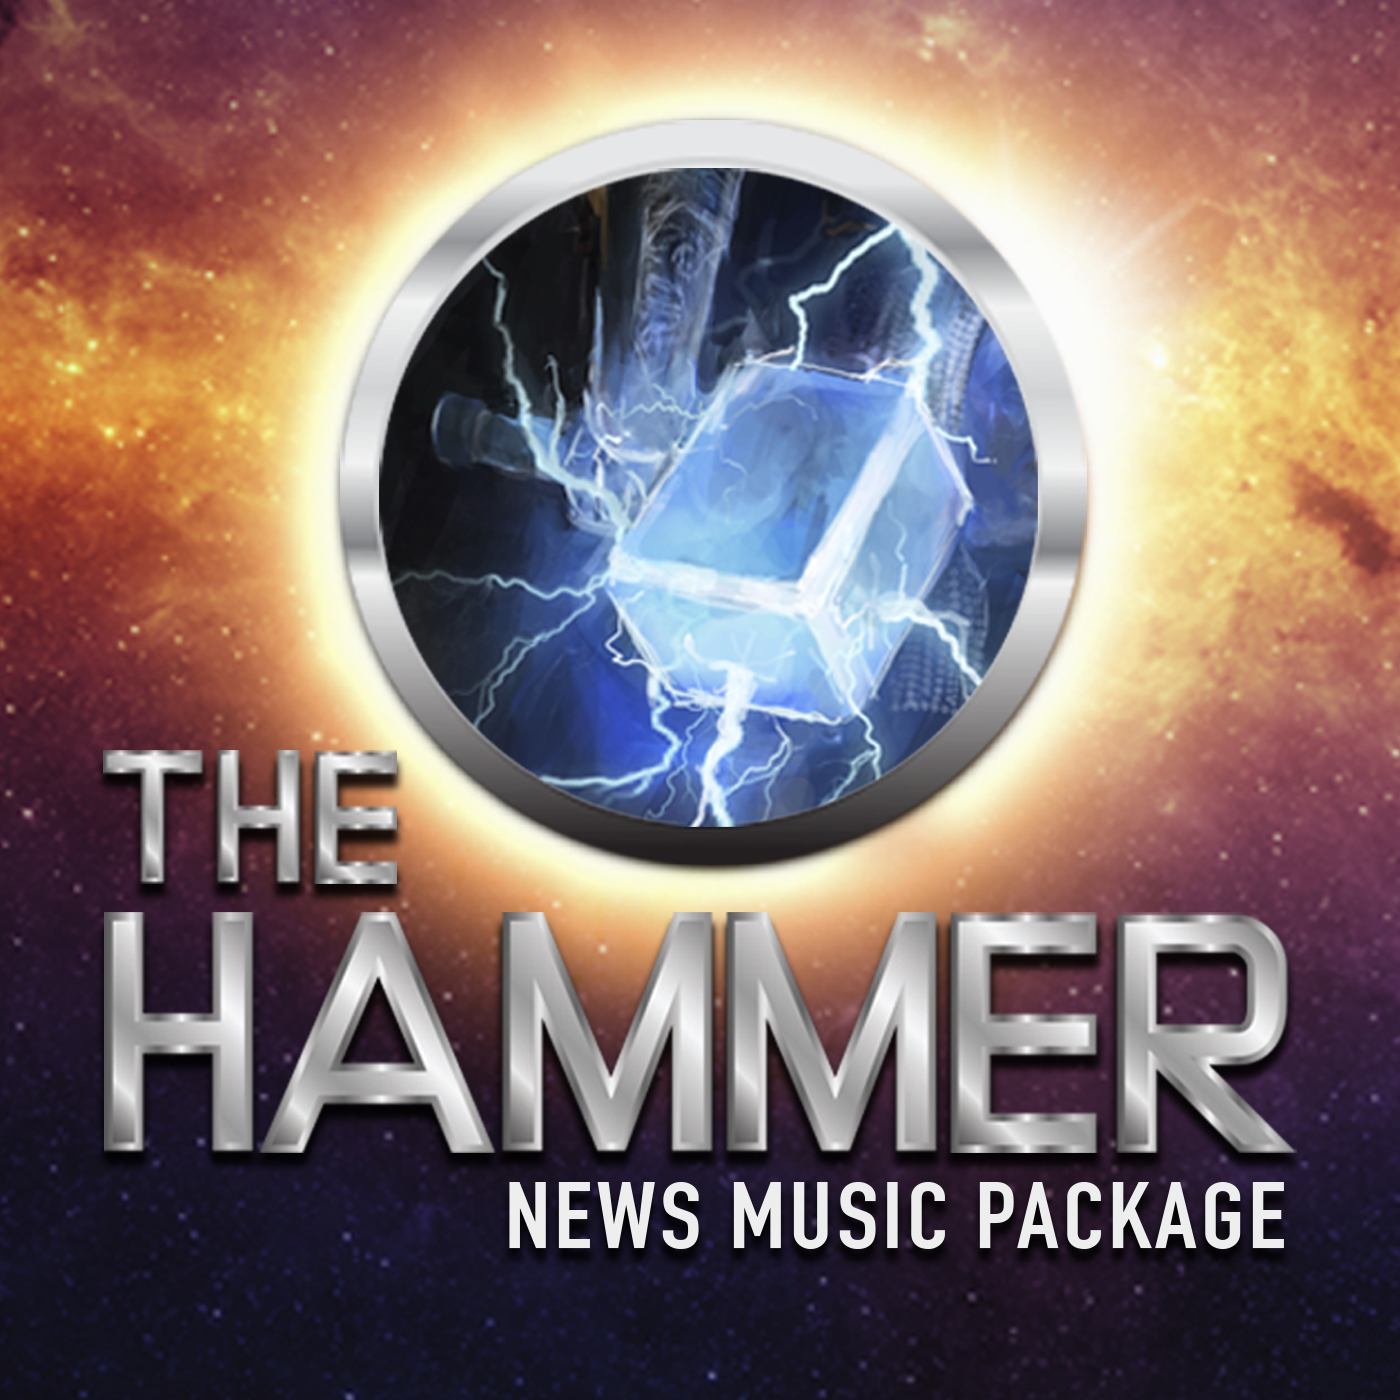 The Hammer News Music Package